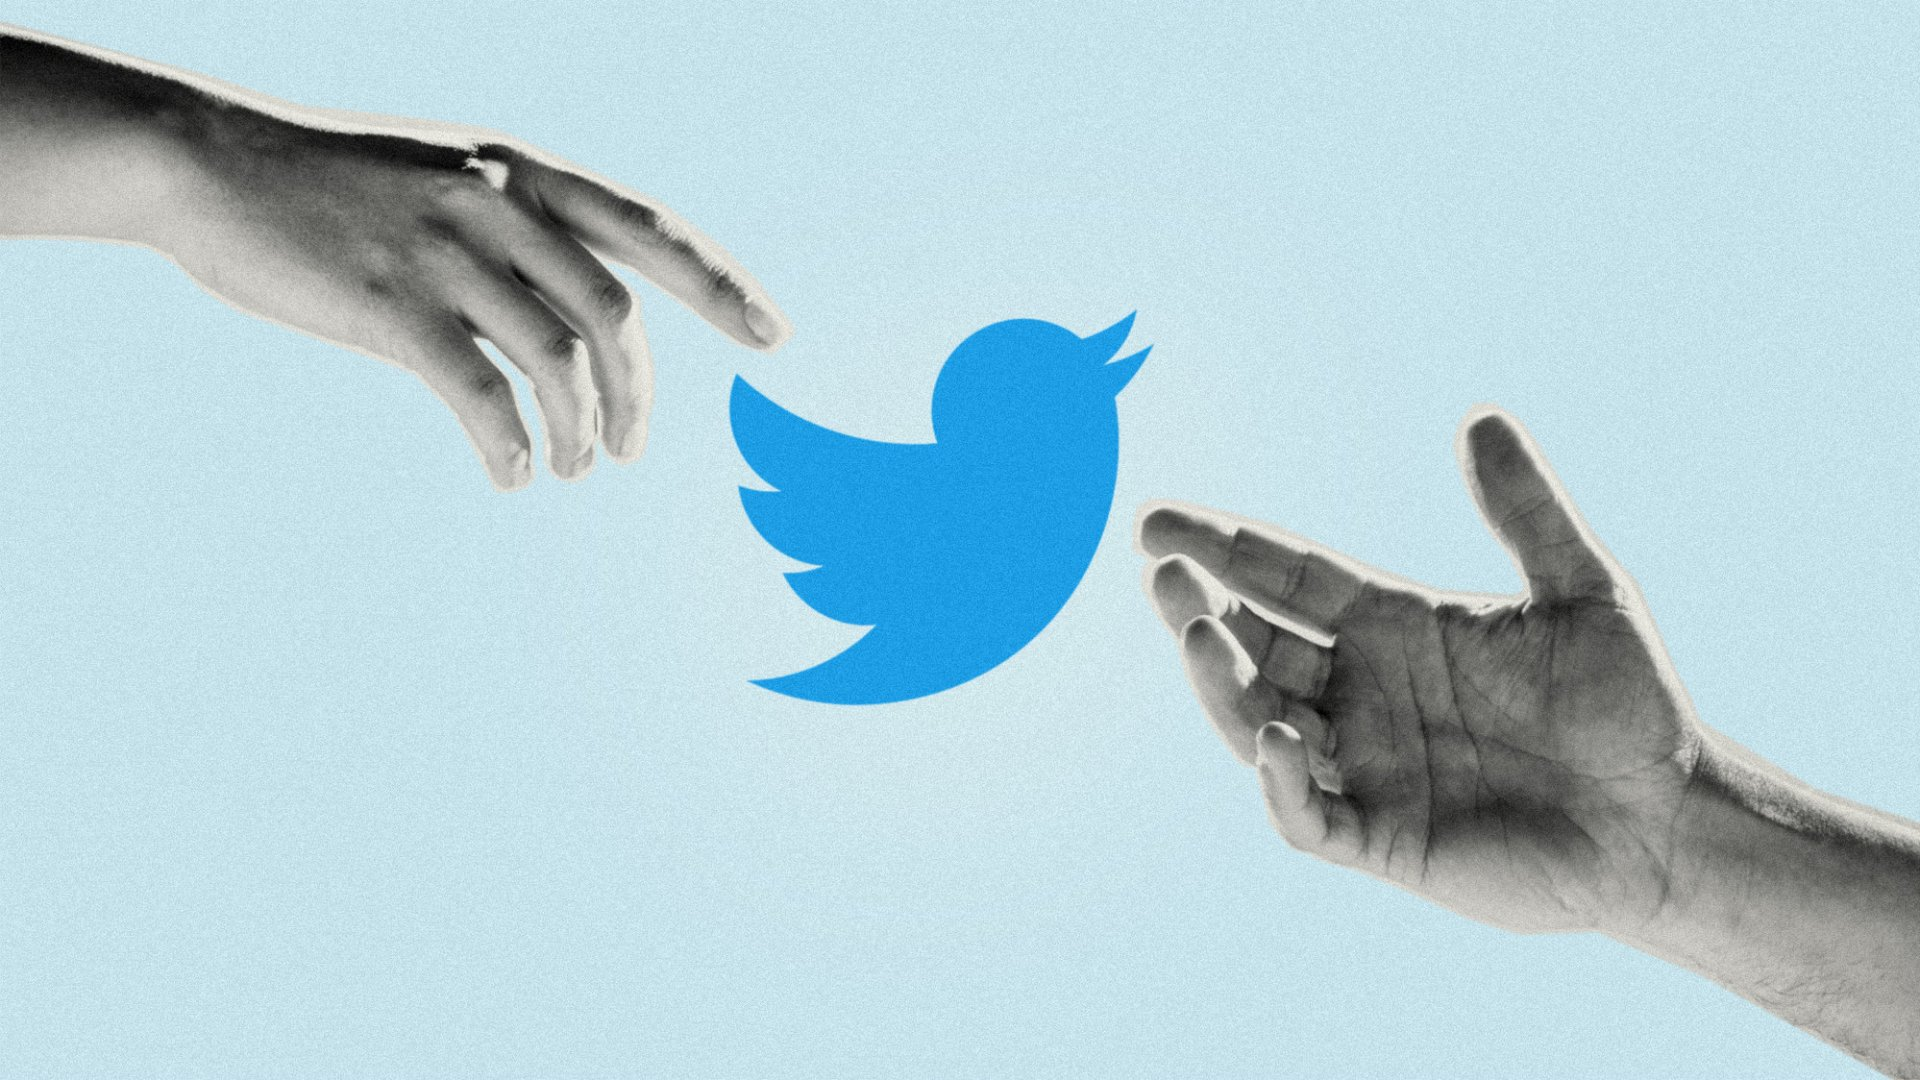 The Twitter Hack Should Make You Reconsider the Wisdom of 'God Mode'